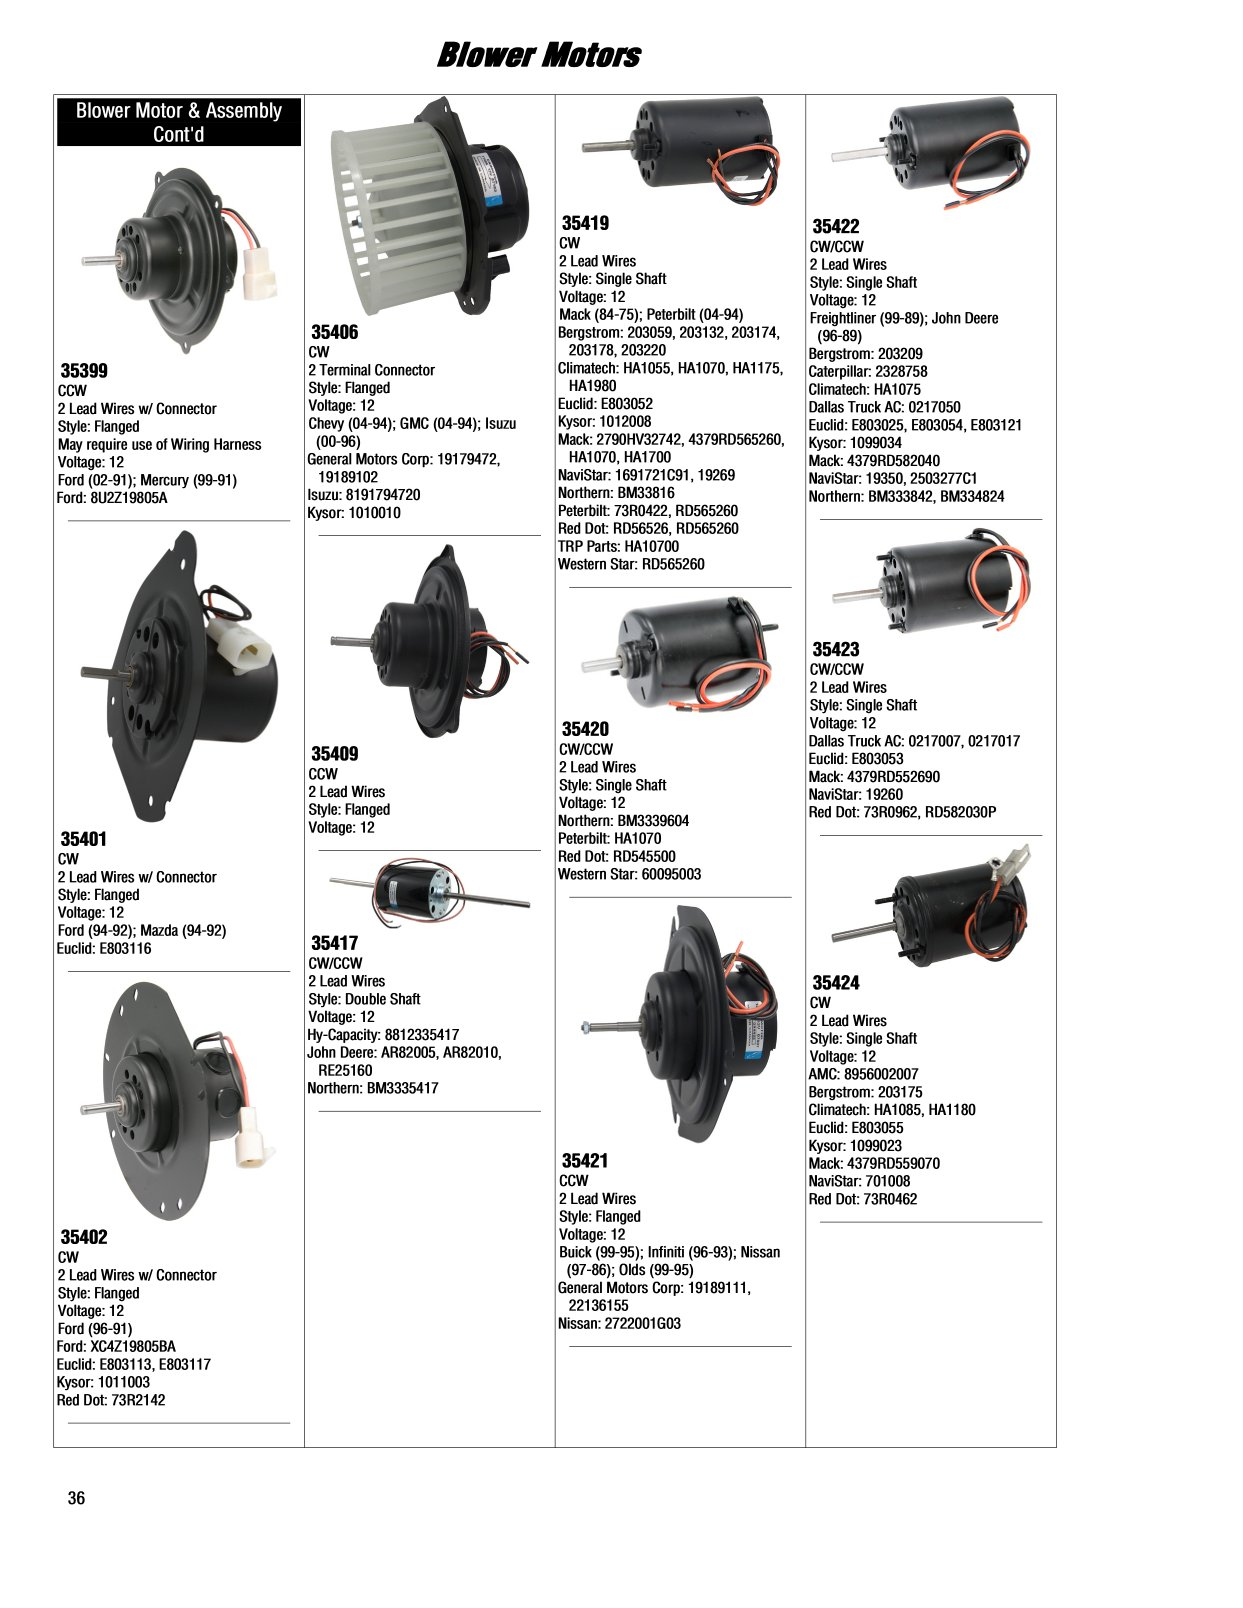 2017 Illustrated Guide Page 35 Blower Motors 1997 Gm Wiring Harness Connector Help